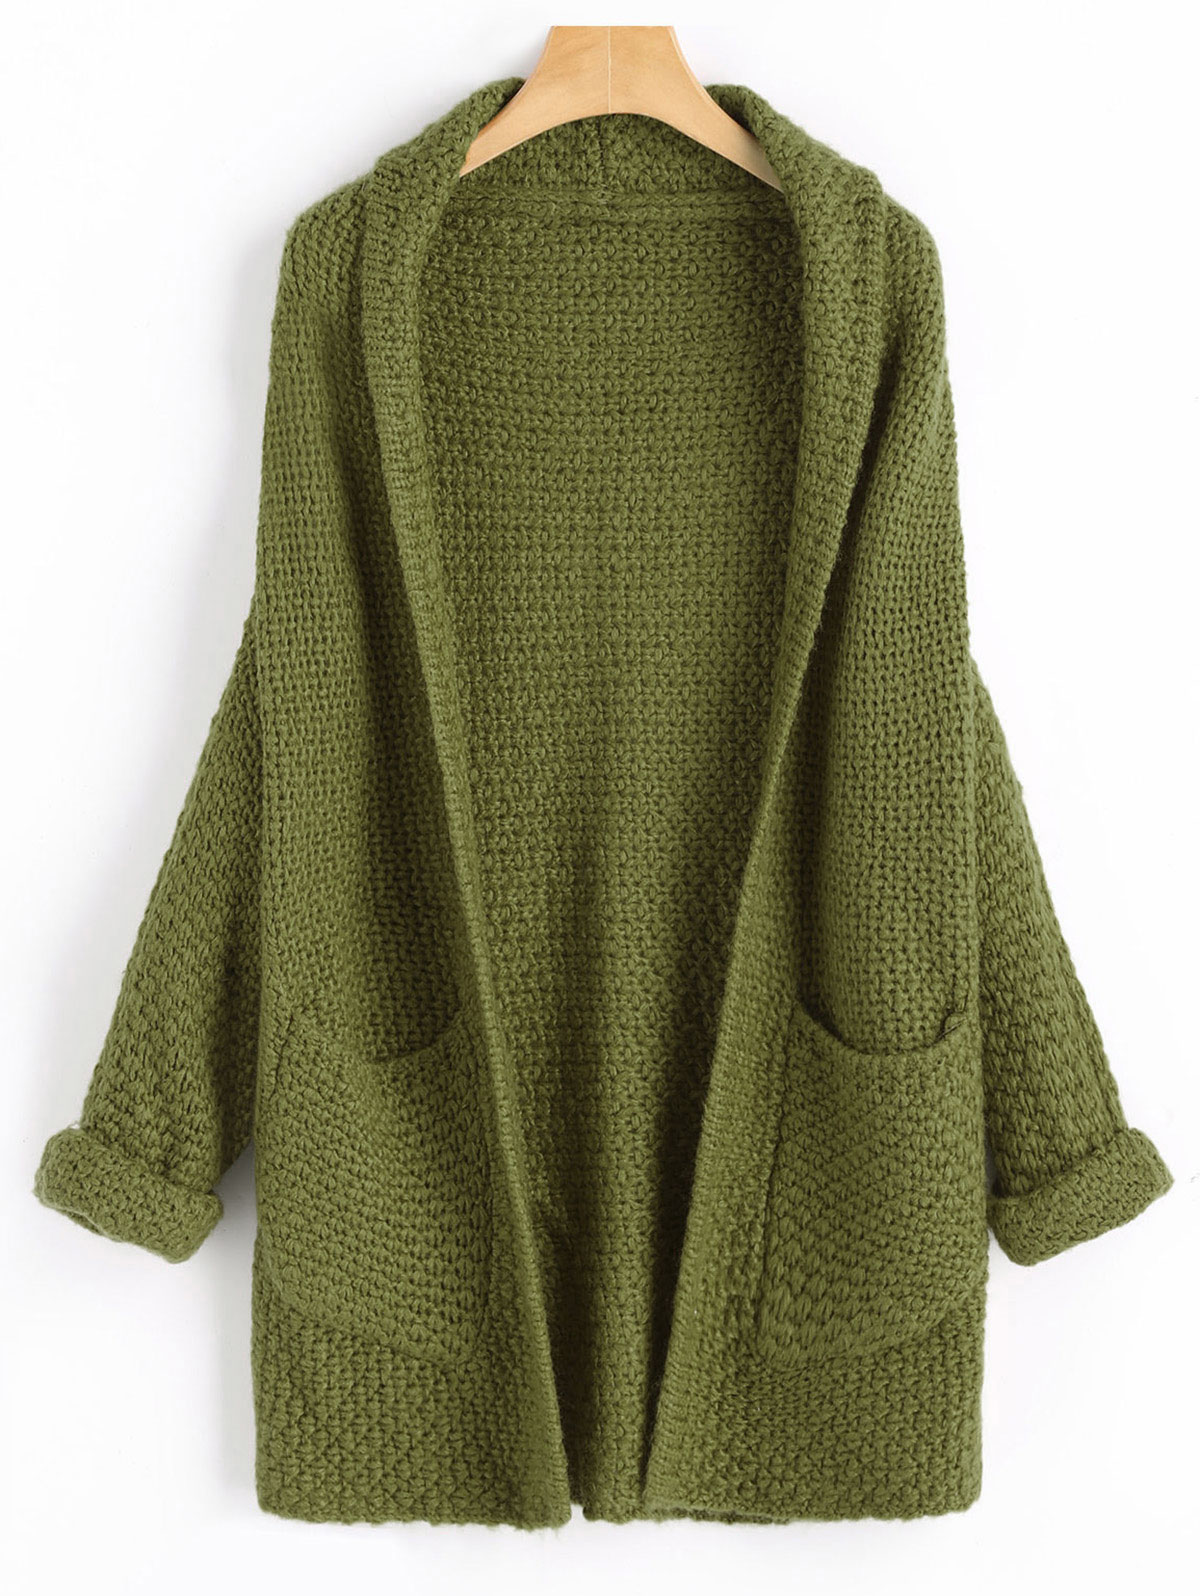 Gamiss Open Front Curled Sleeve Batwing Cardigan Women Autumn Winter